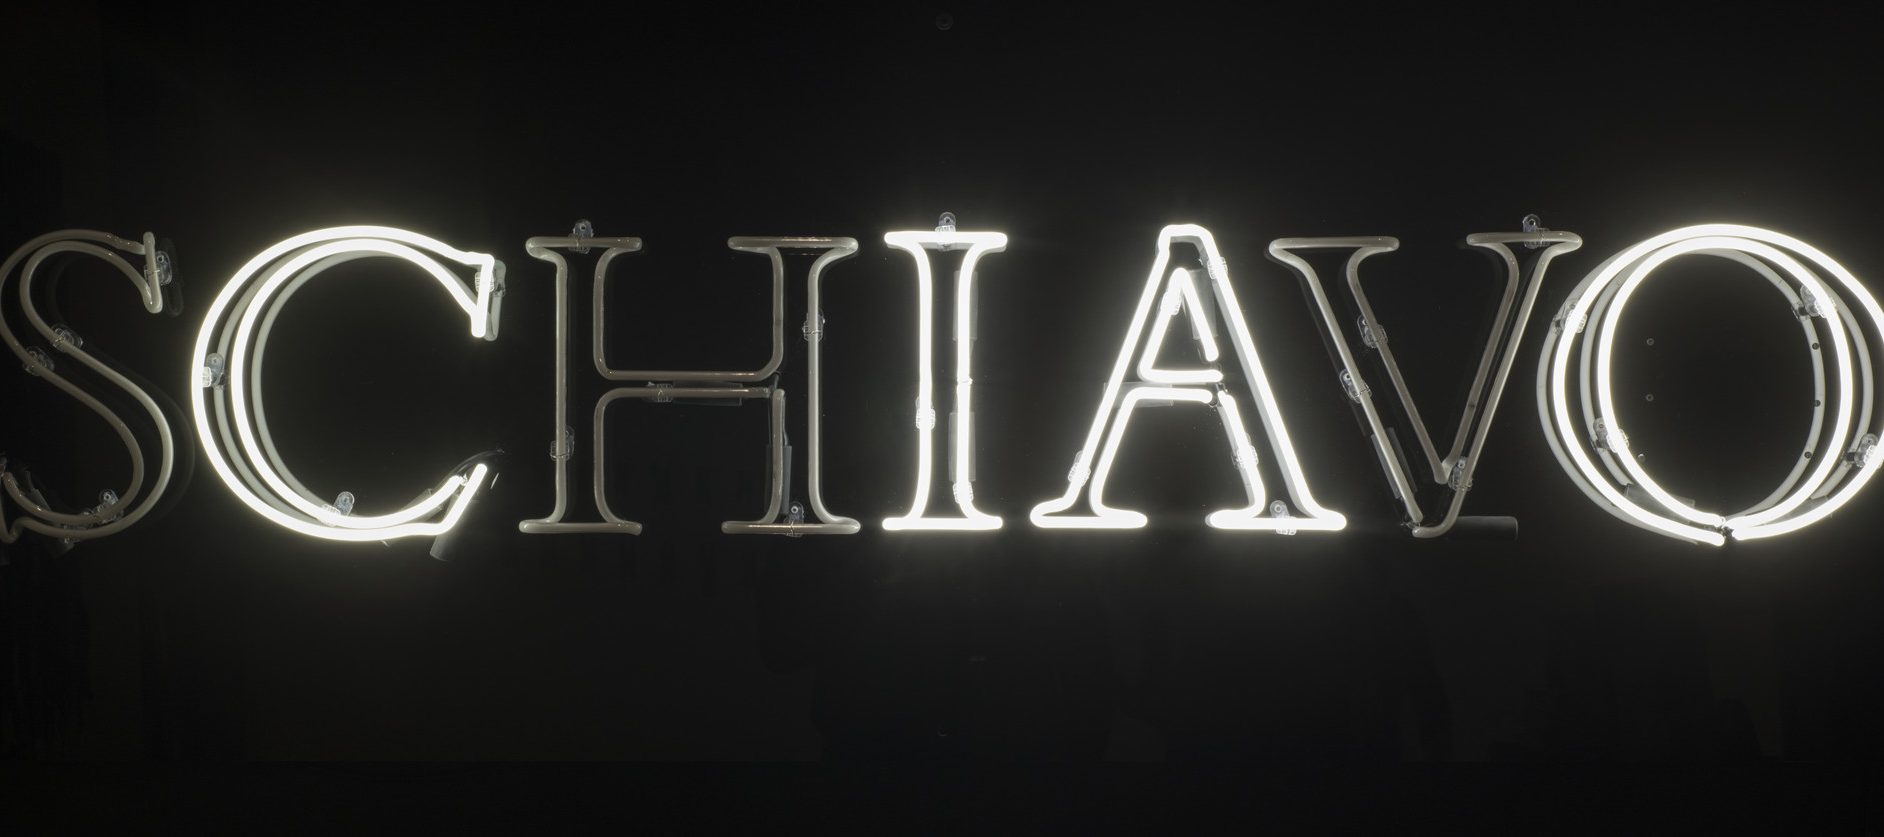 White, capital, neon letters spell the Italian word 'schiavo' in serif text against a black background. The 's,' 'h,' and 'v' are dark, leaving the letters to spell 'ciao.'